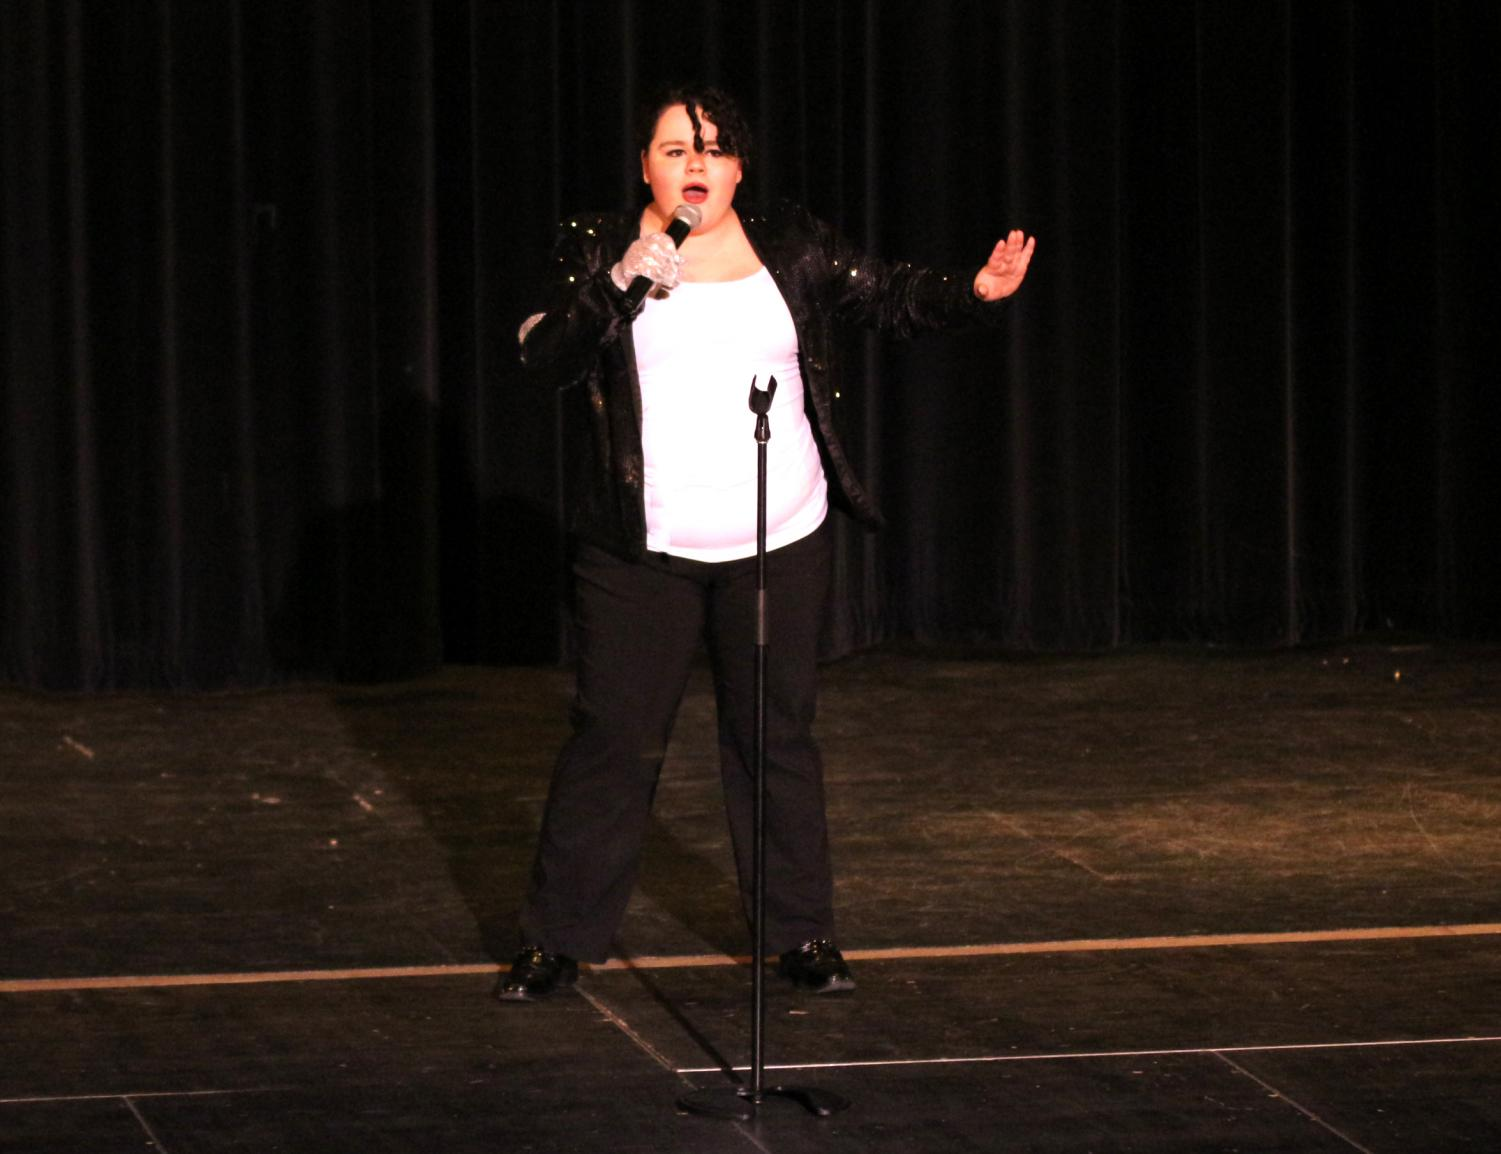 Sophomore Sydney Wanek performs a medley of Michael Jackson at the Pledgemaker's talent show in the PAC on April 24.